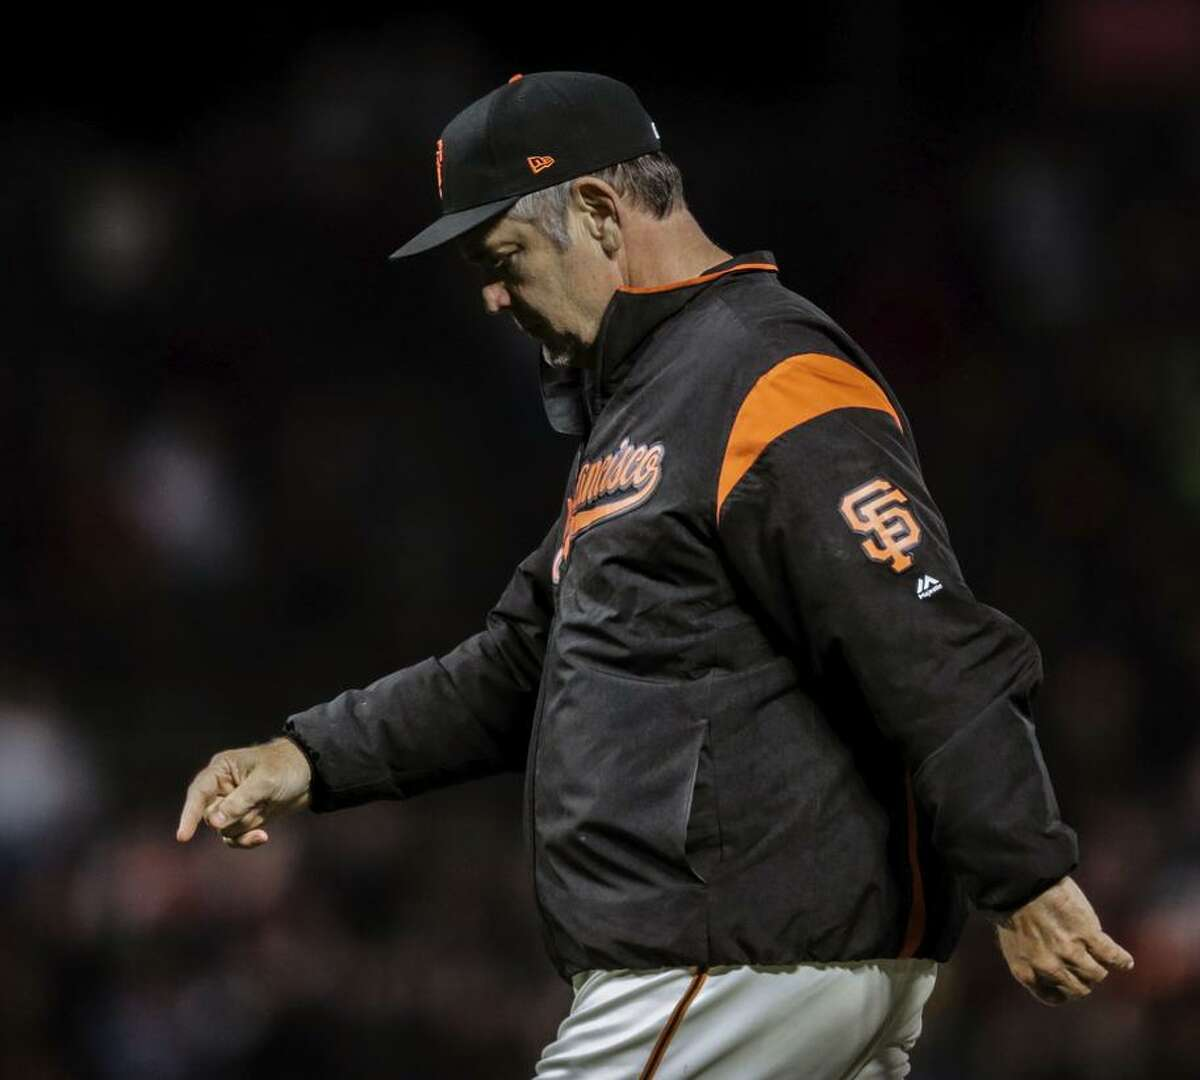 When Bruce Bochy walks away from the Giants, the three-time champion is likely to walk into the Hall of Fame.